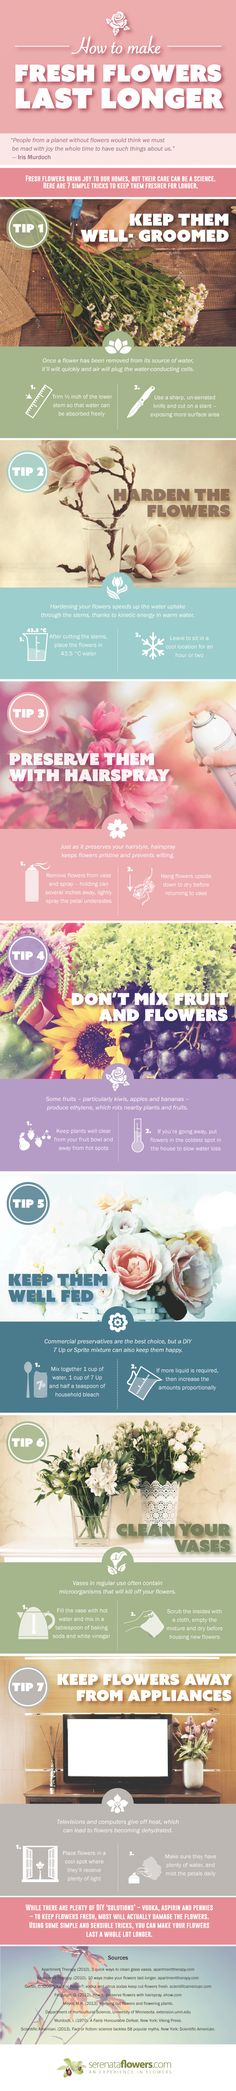 Sure, hairspray does a fine job of keeping hair in place, but did you know hairspray can also preserve fresh flowers and keep them from wilting?